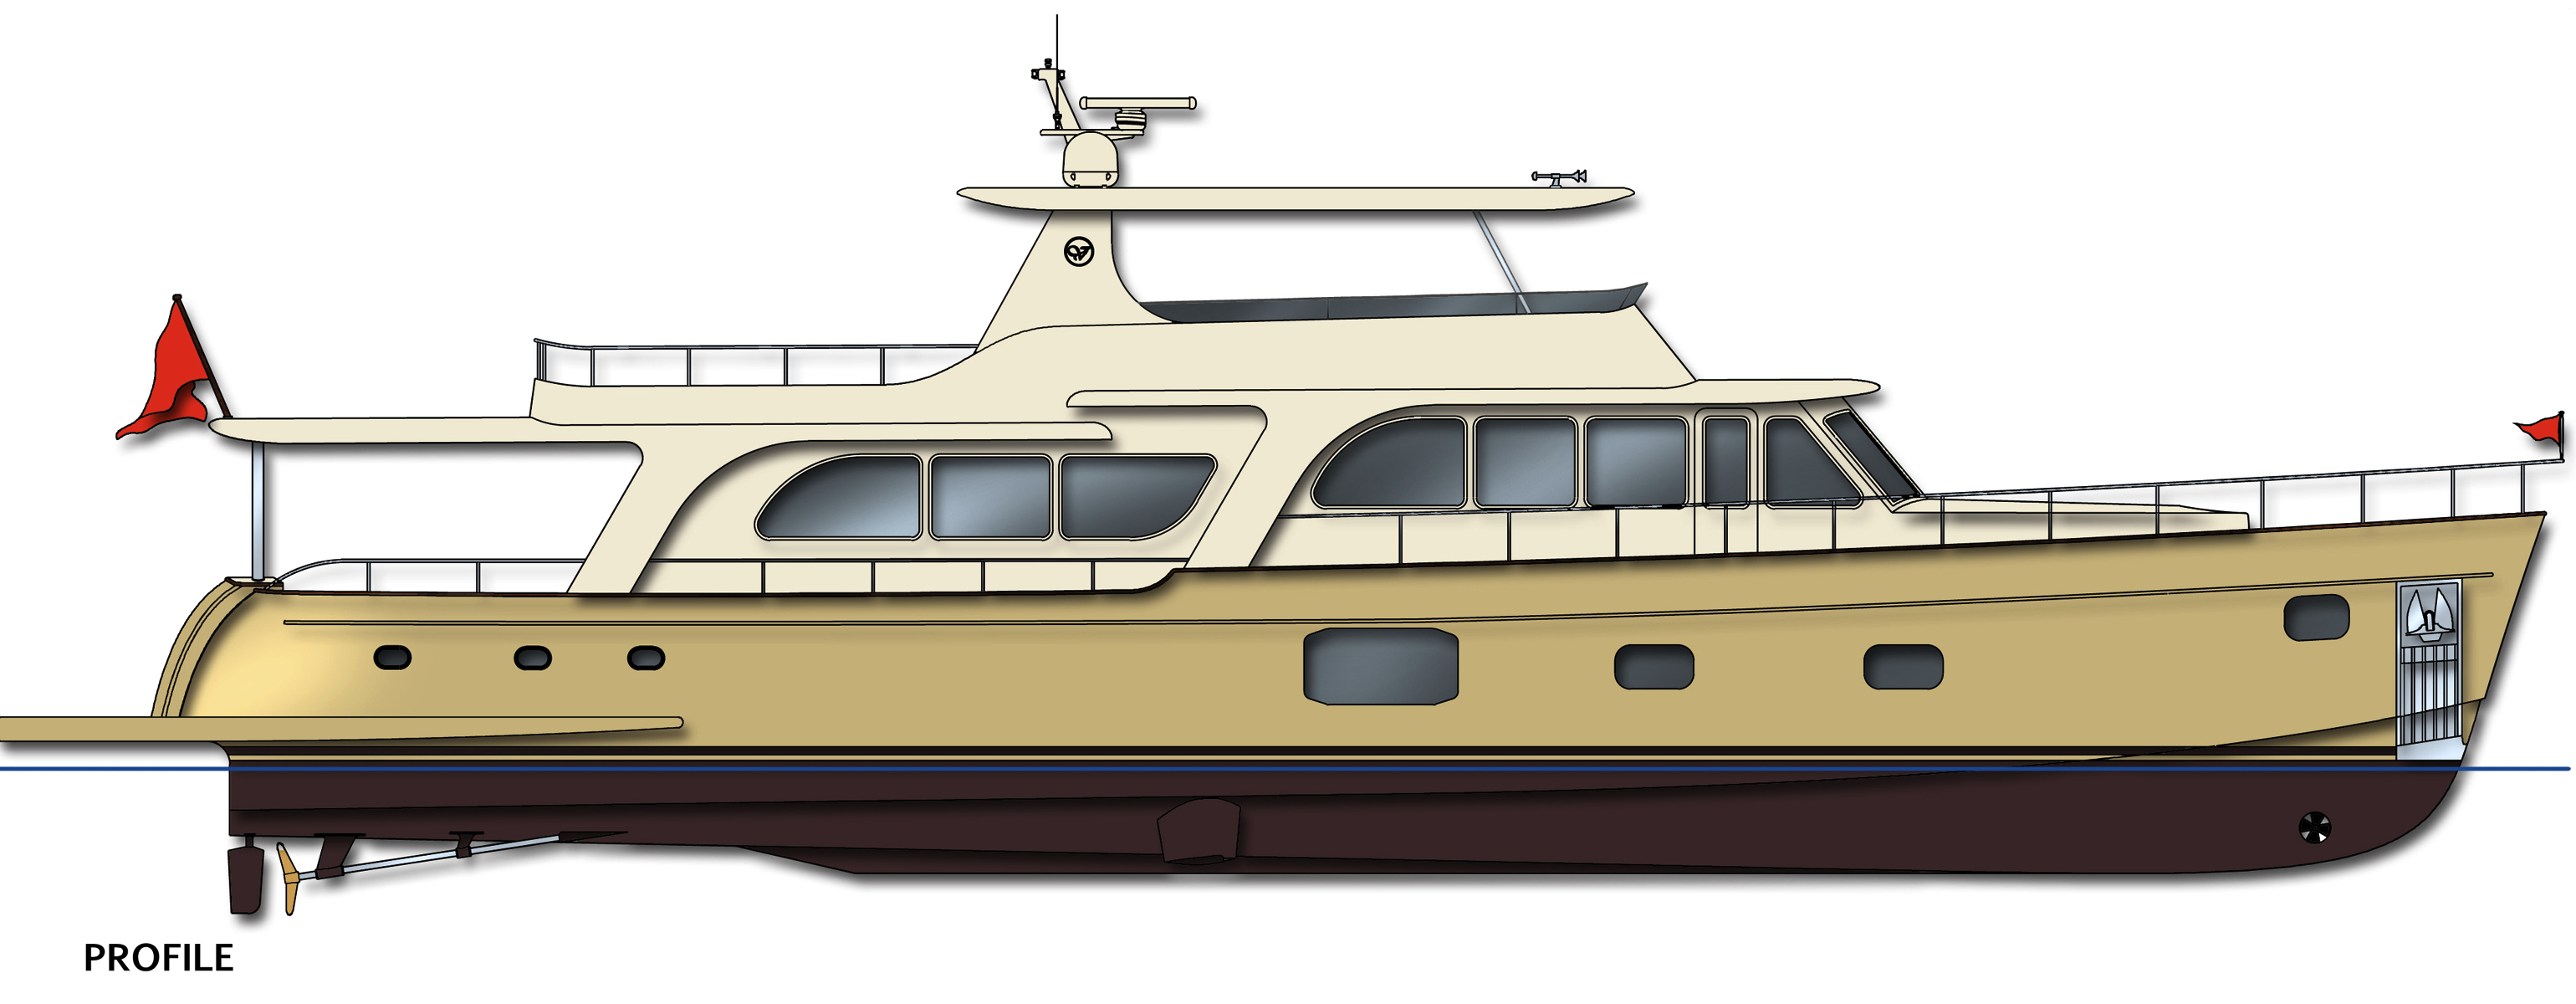 The New 100 Cruiser Motor Yacht By Vicem Yachts Yacht